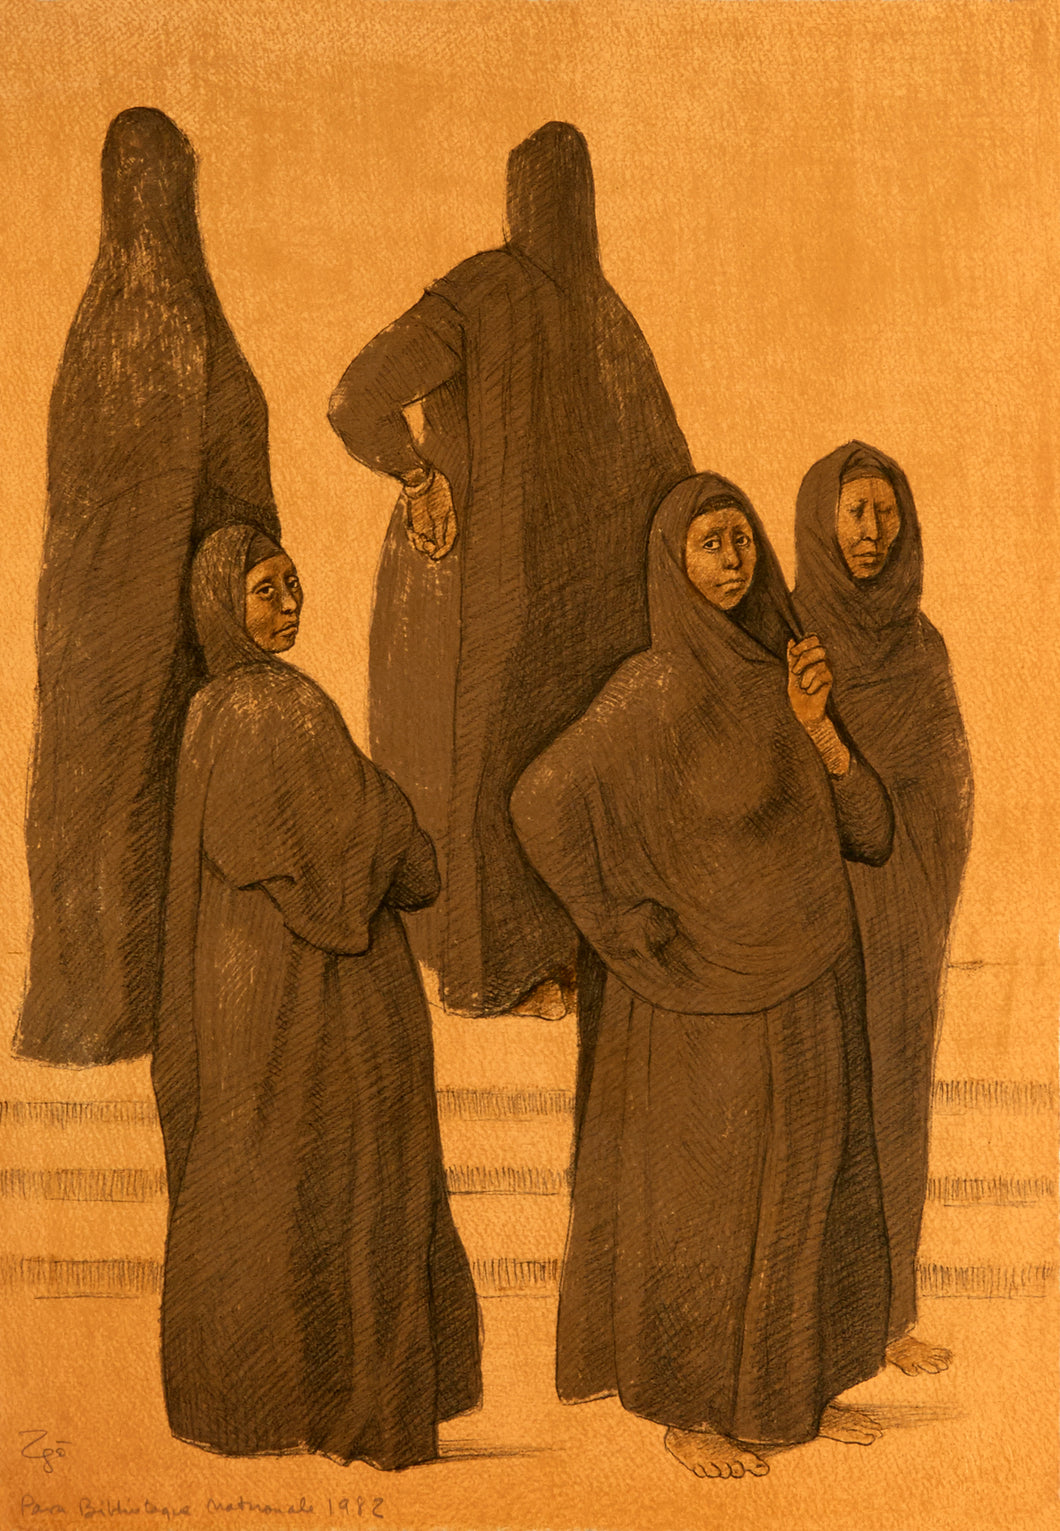 Impressions of Egypt Suite, Plate 1 by Francisco Zuniga 1982